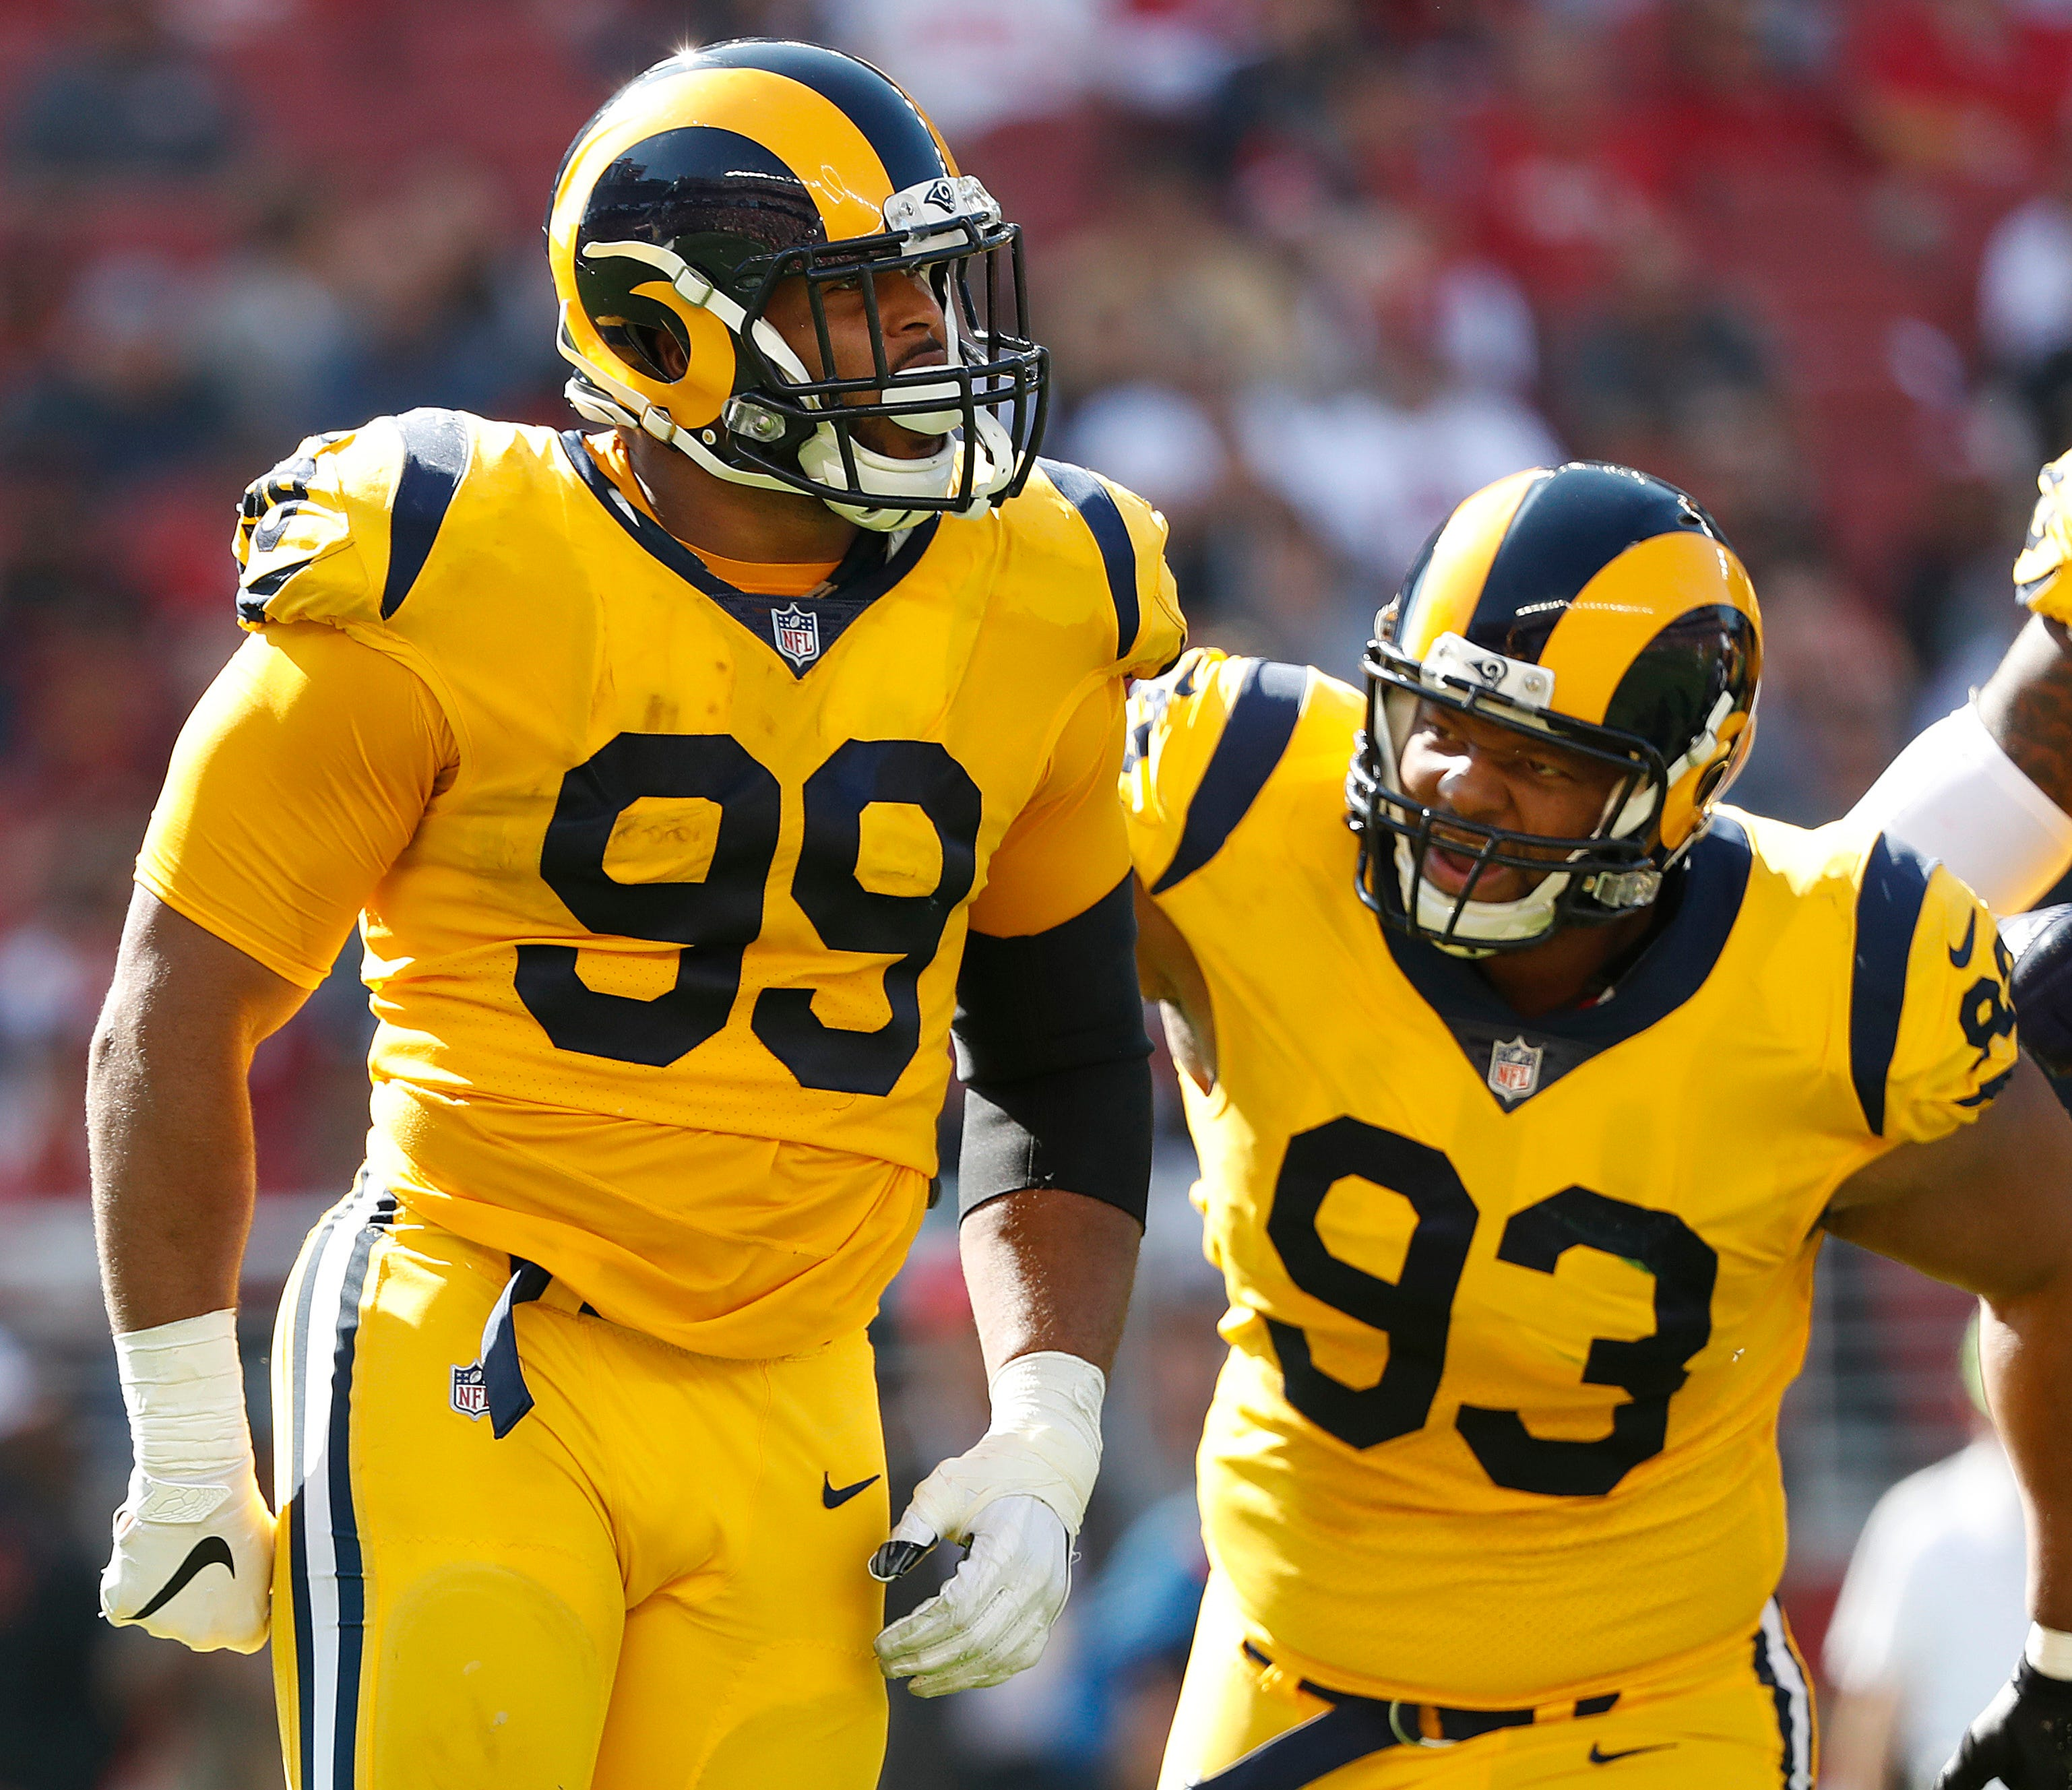 Los Angeles Rams defensive tackle Aaron Donald (99) celebrates with defensive tackle Ndamukong Suh (93) during the first half of an NFL football game against the San Francisco 49ers in Santa Clara, Calif., Sunday, Oct. 21, 2018. (AP Photo/Tony Avelar)